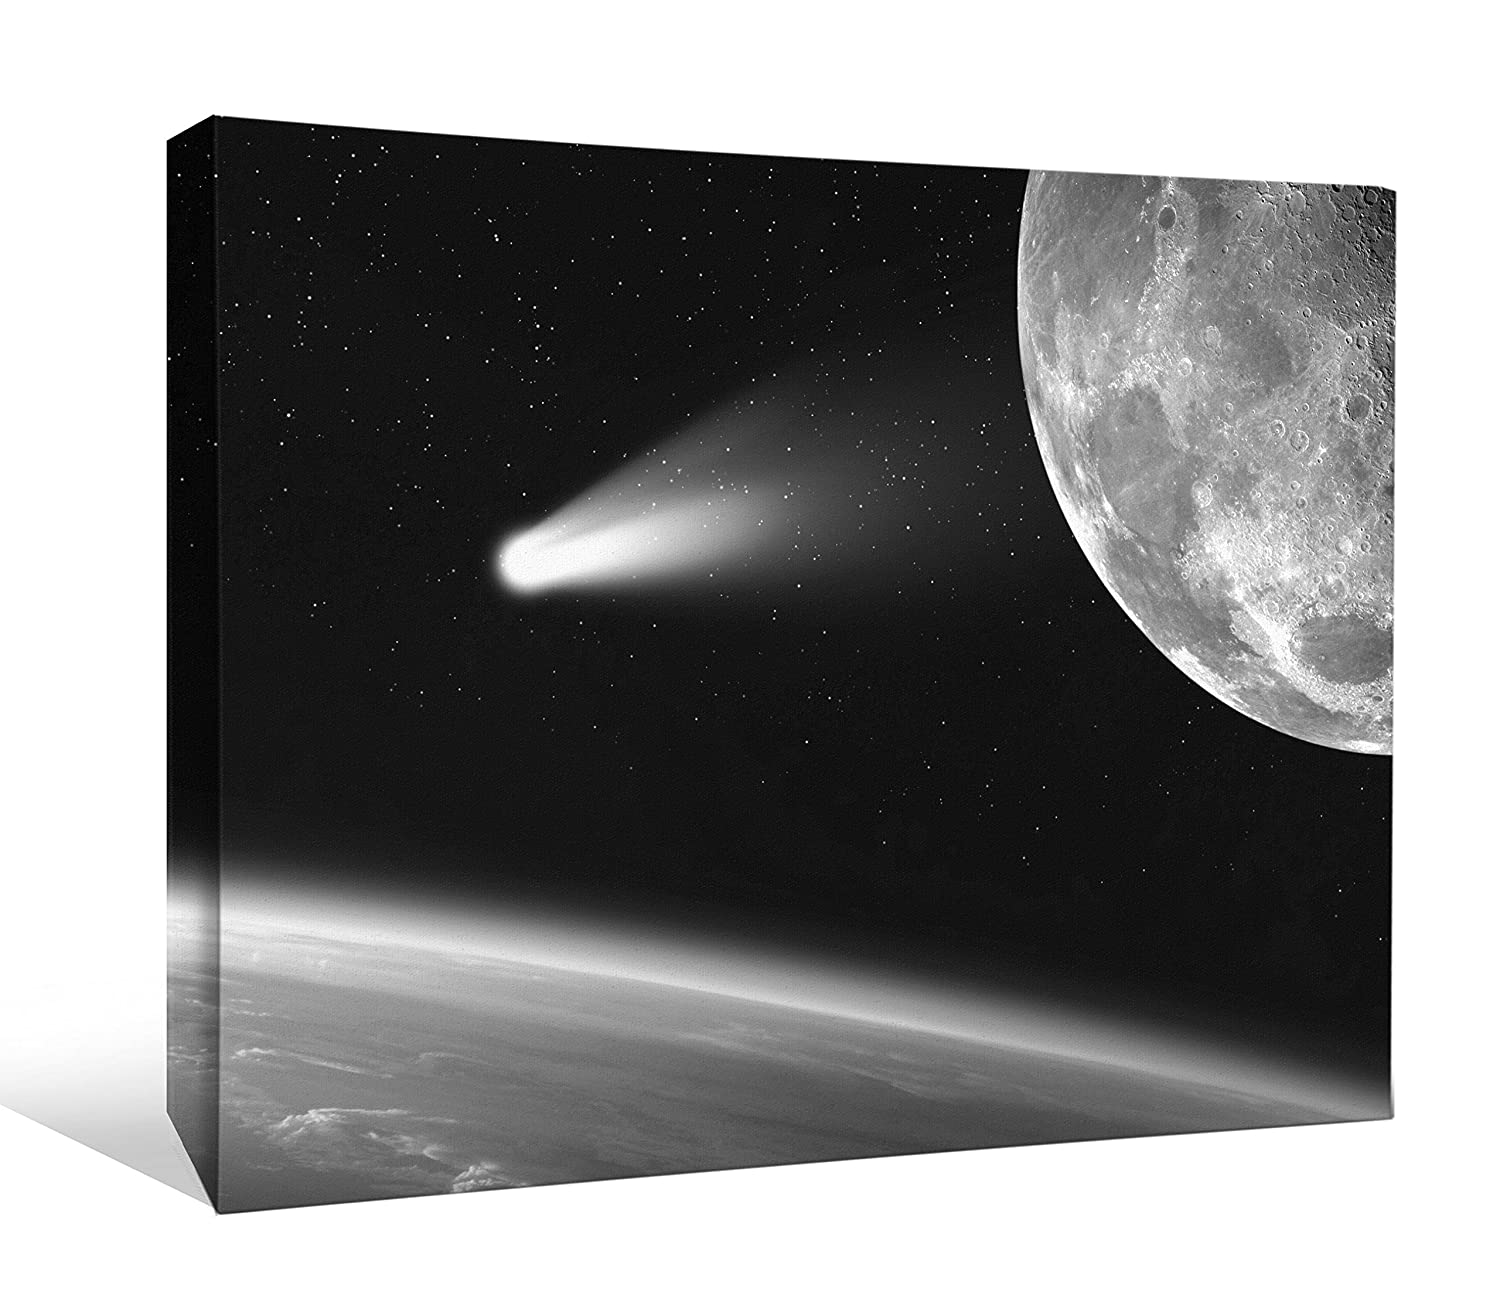 24 x 18 inch JP London BWCNV2353 Monochrome 2353 2 inch Thick Heavyweight Black /& White Gallery Wrap Canvas Wall Art Halleys Comet Space Moon Light Wallpaper